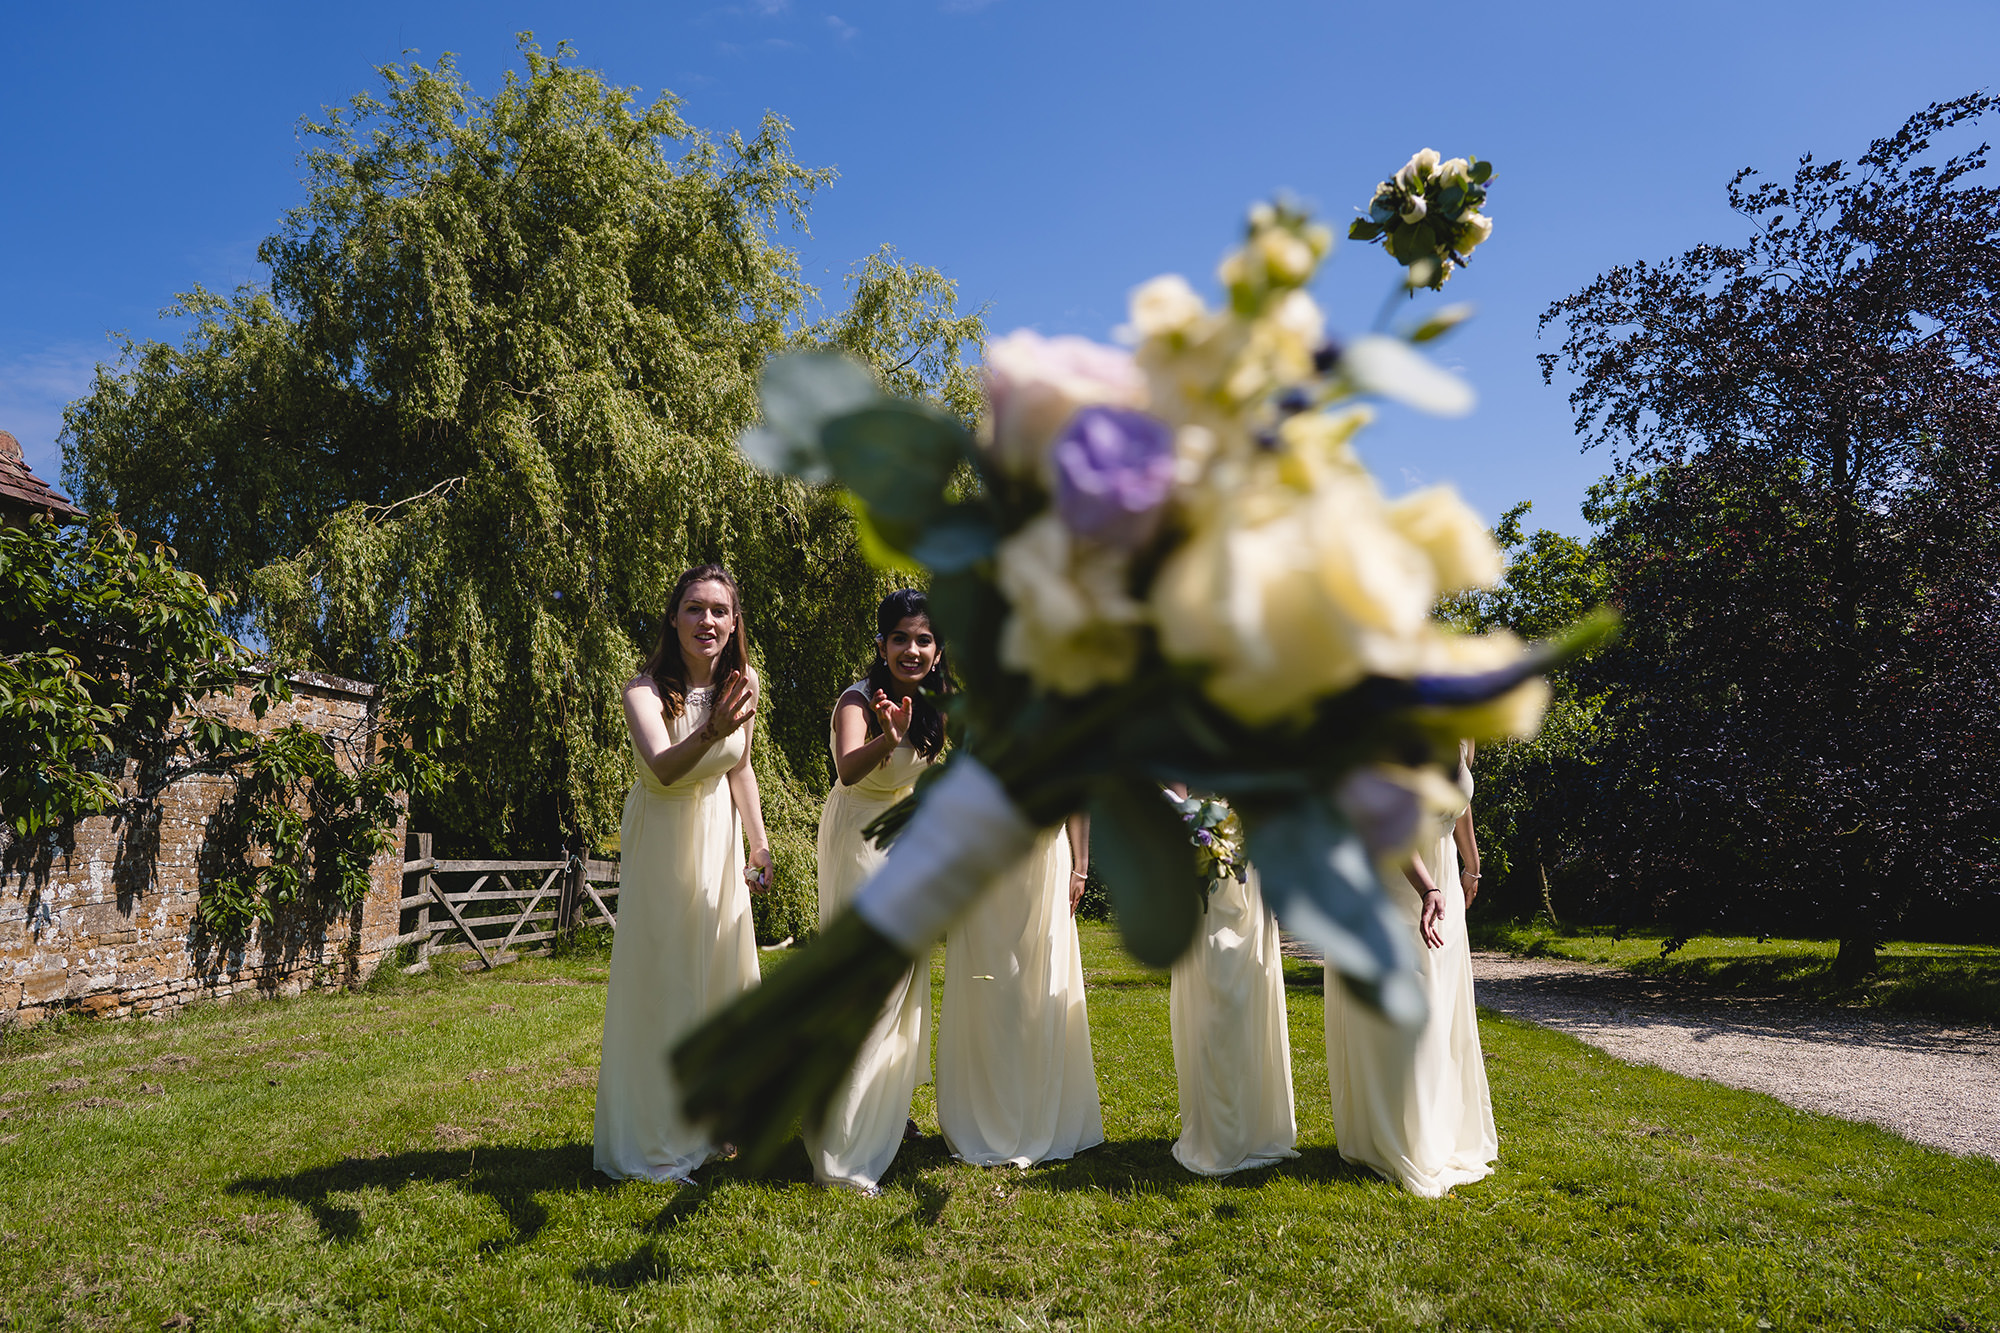 bridesmaids throwing their bouquet at the camera